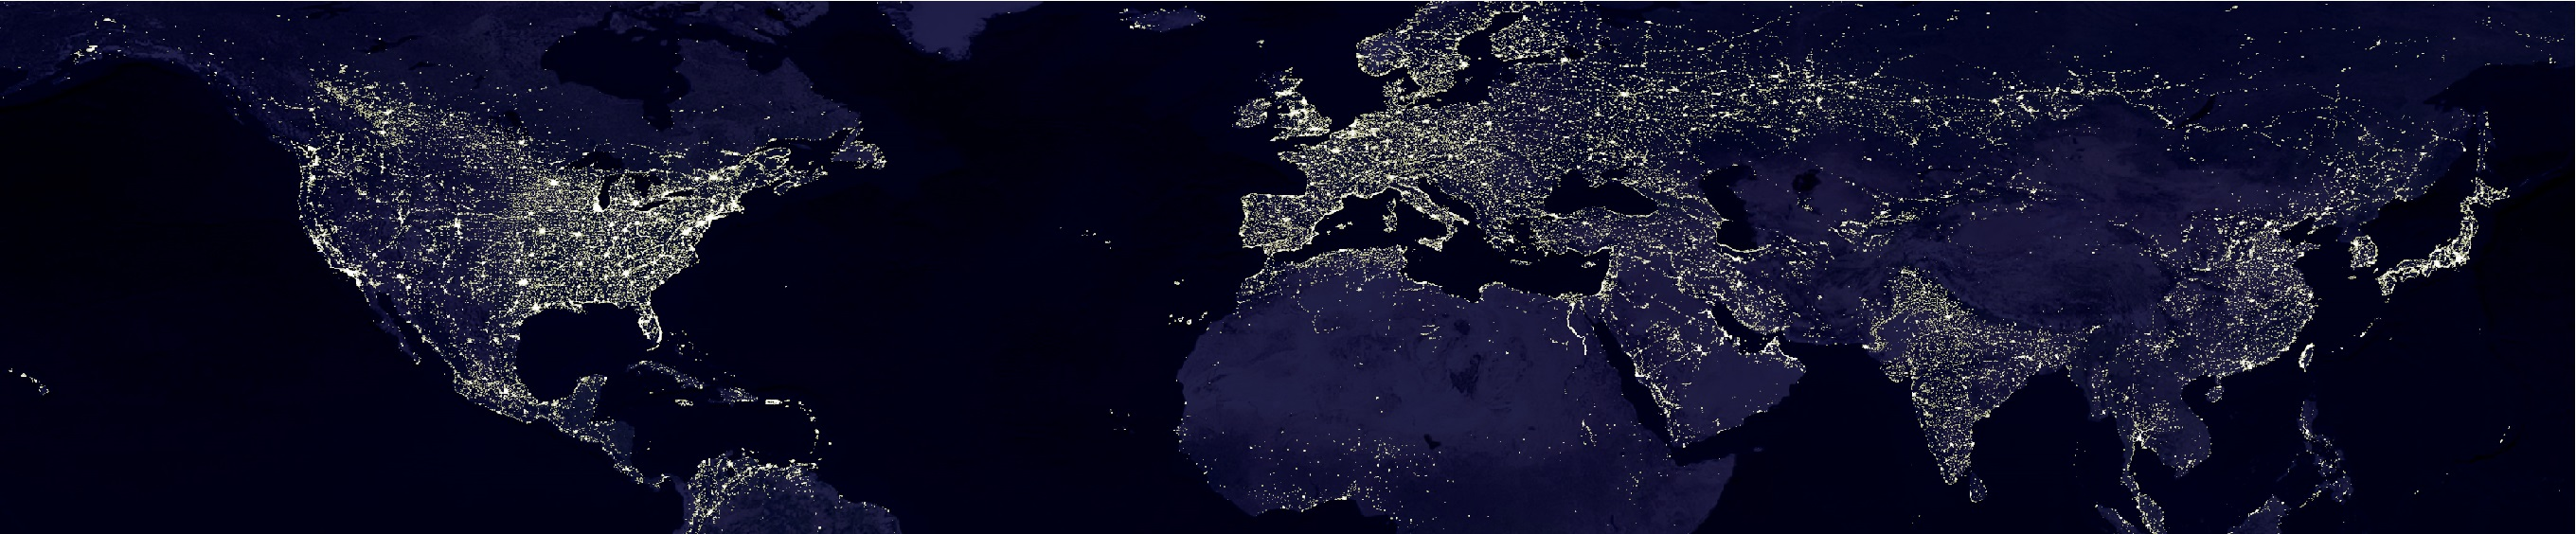 Earthlights_dmsp_slide